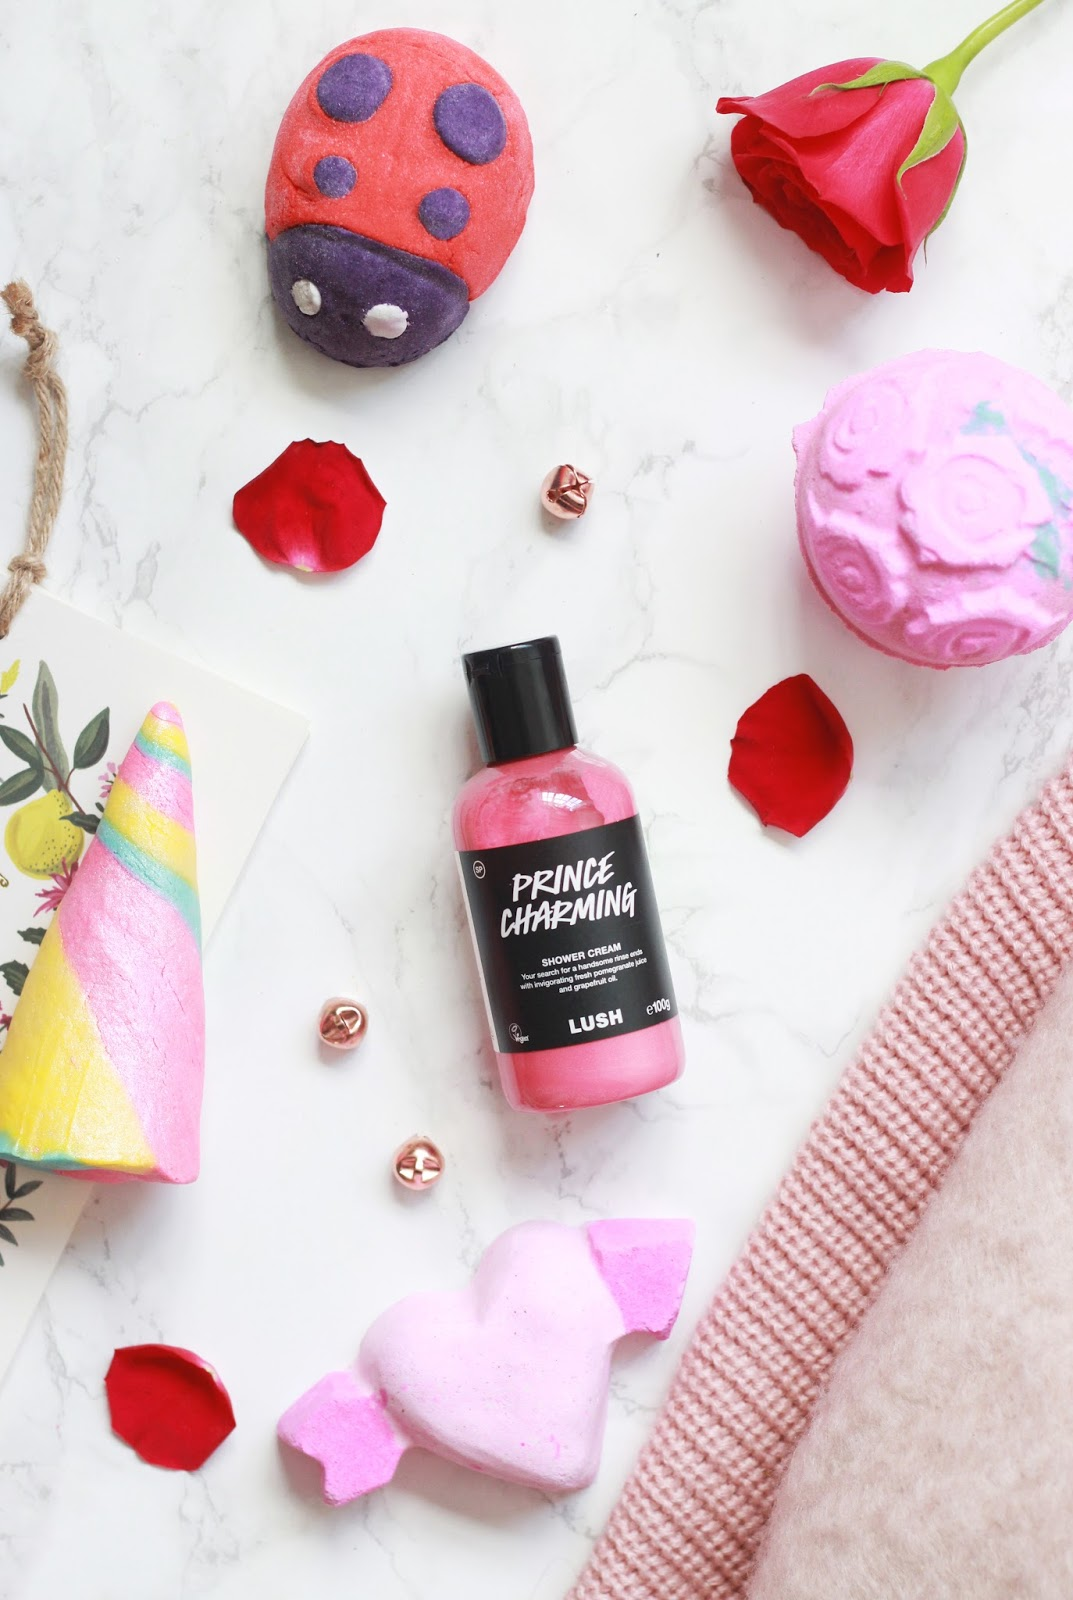 Lush Valentine's Day Collection 2017